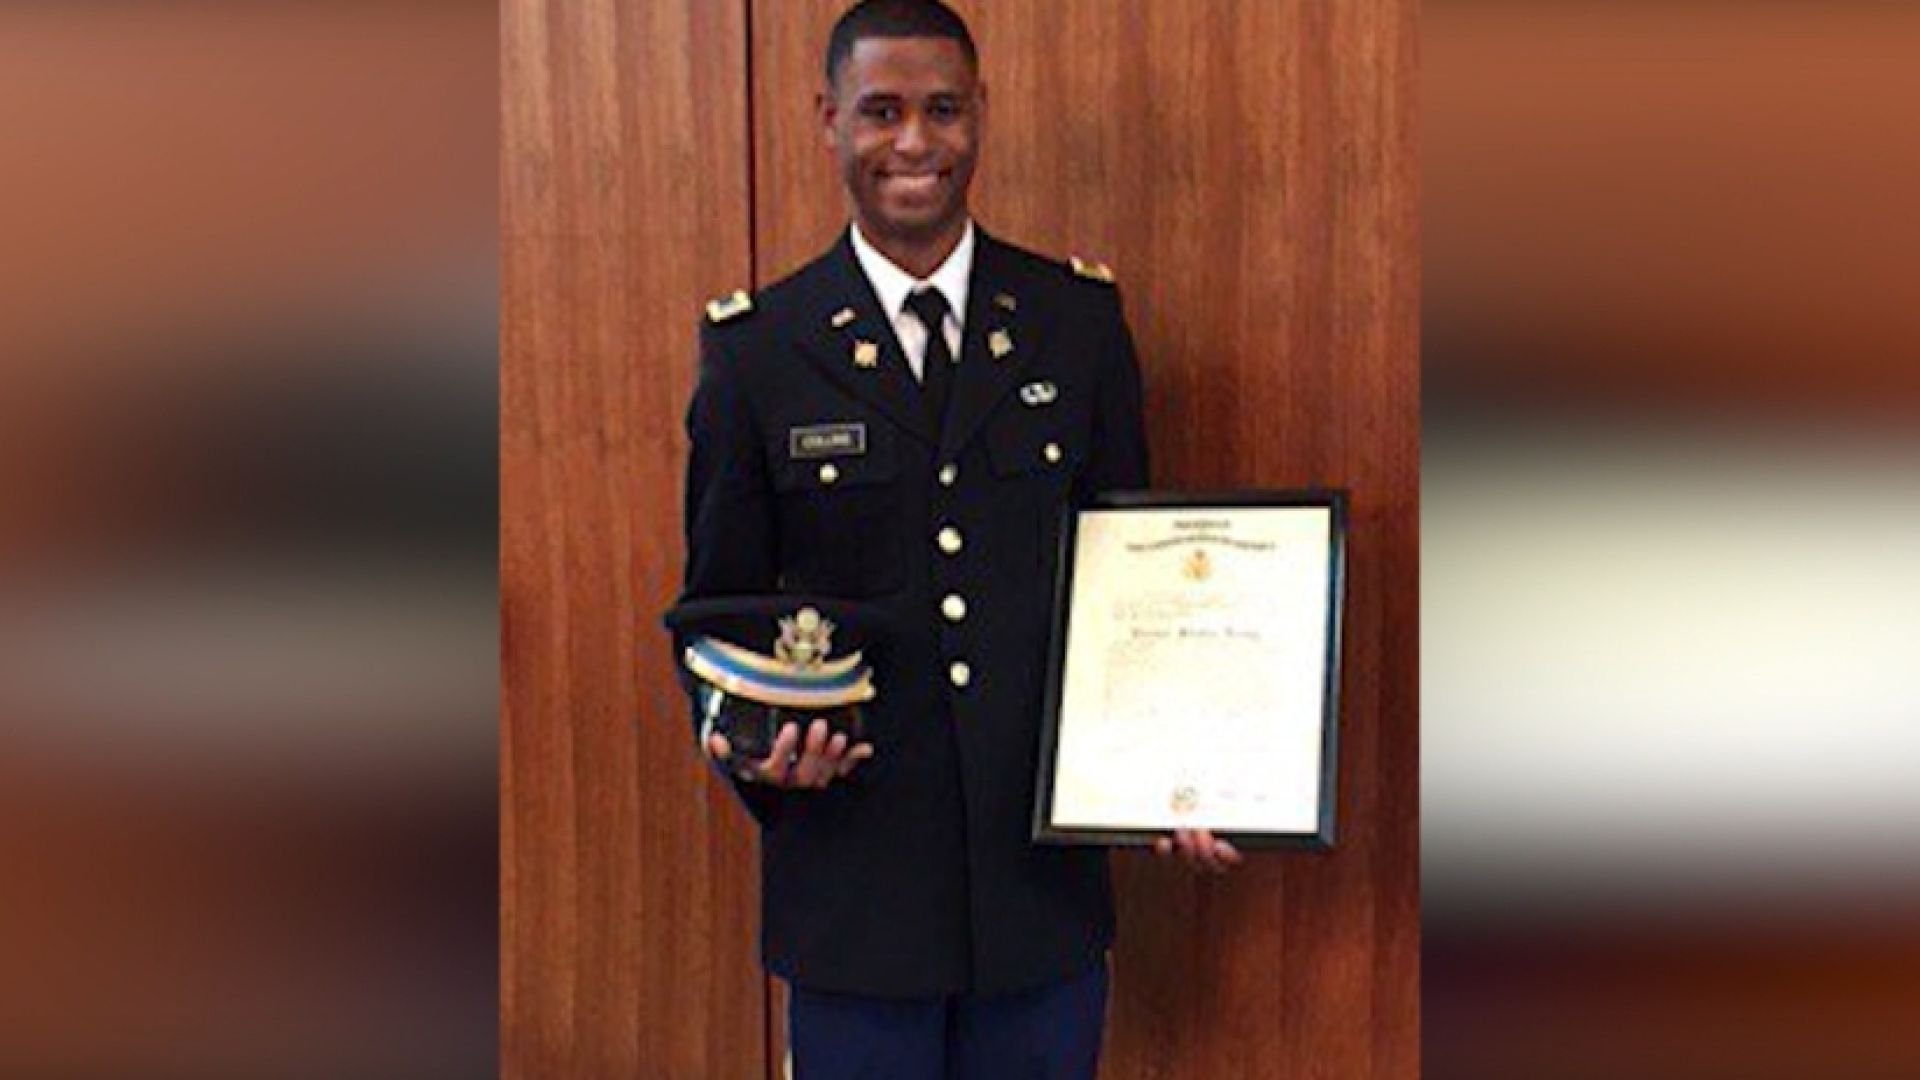 Army 2nd Lt. Richard Wilbur Collins III was stabbed to death on a University of Maryland campus.